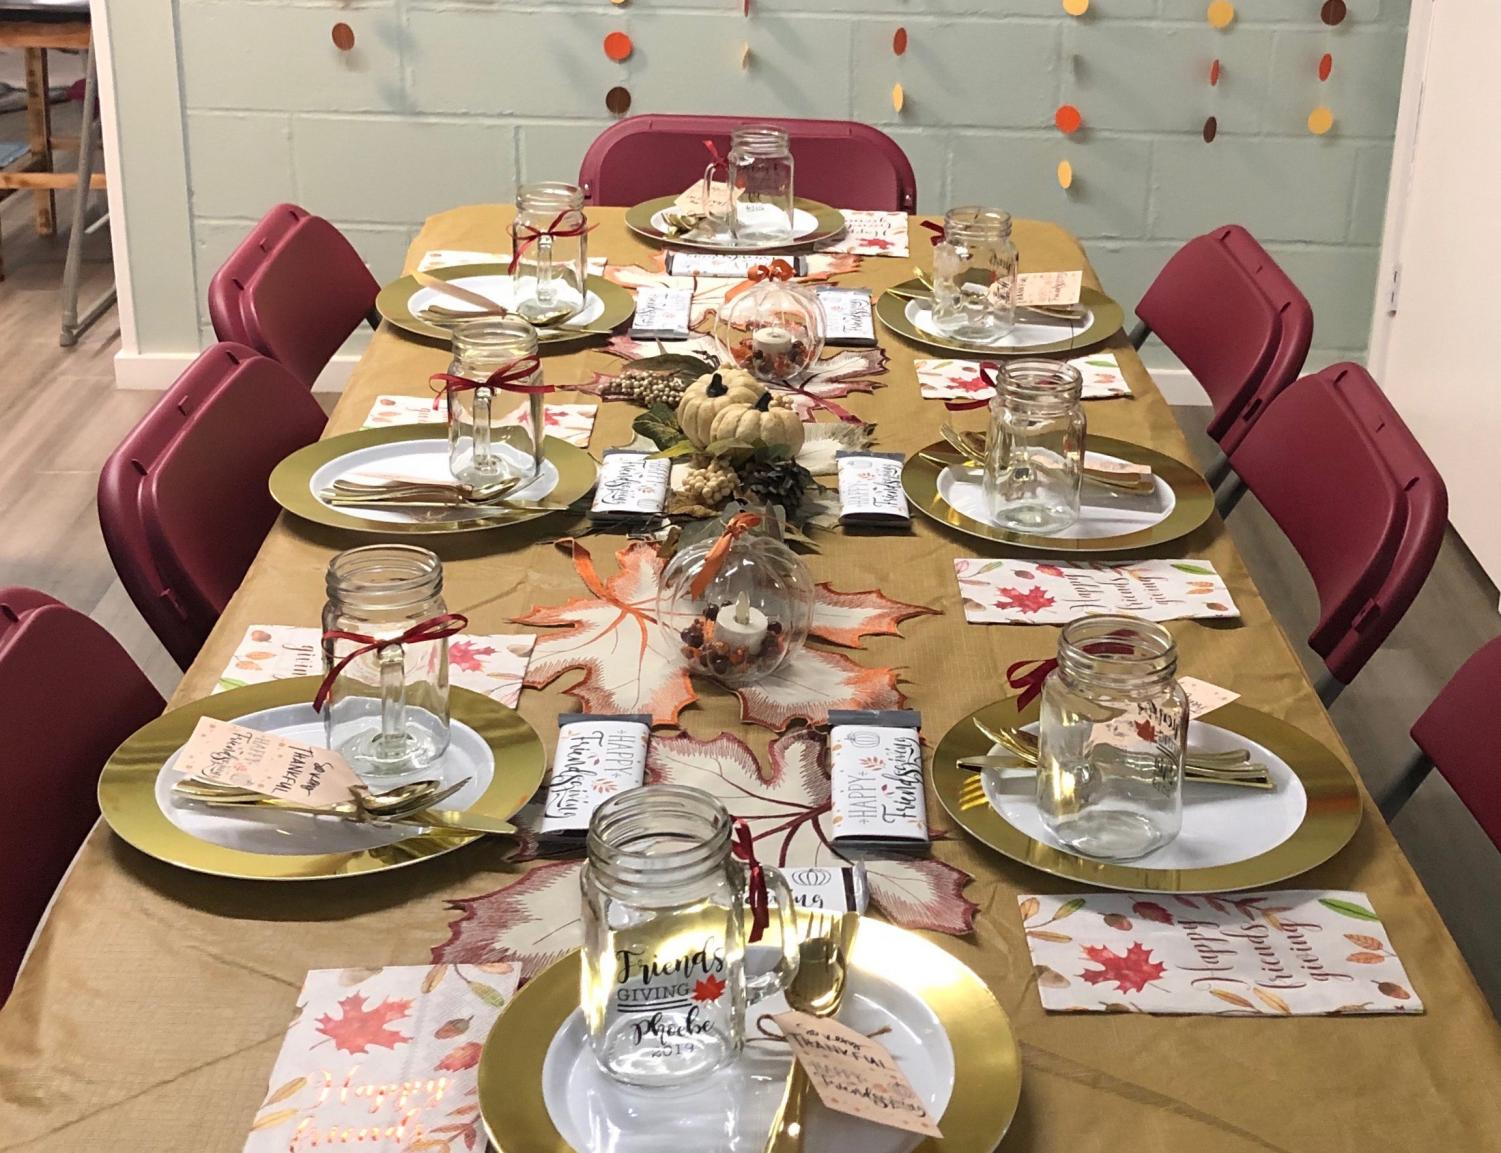 Get your tables set to welcome friends and family this holiday season.